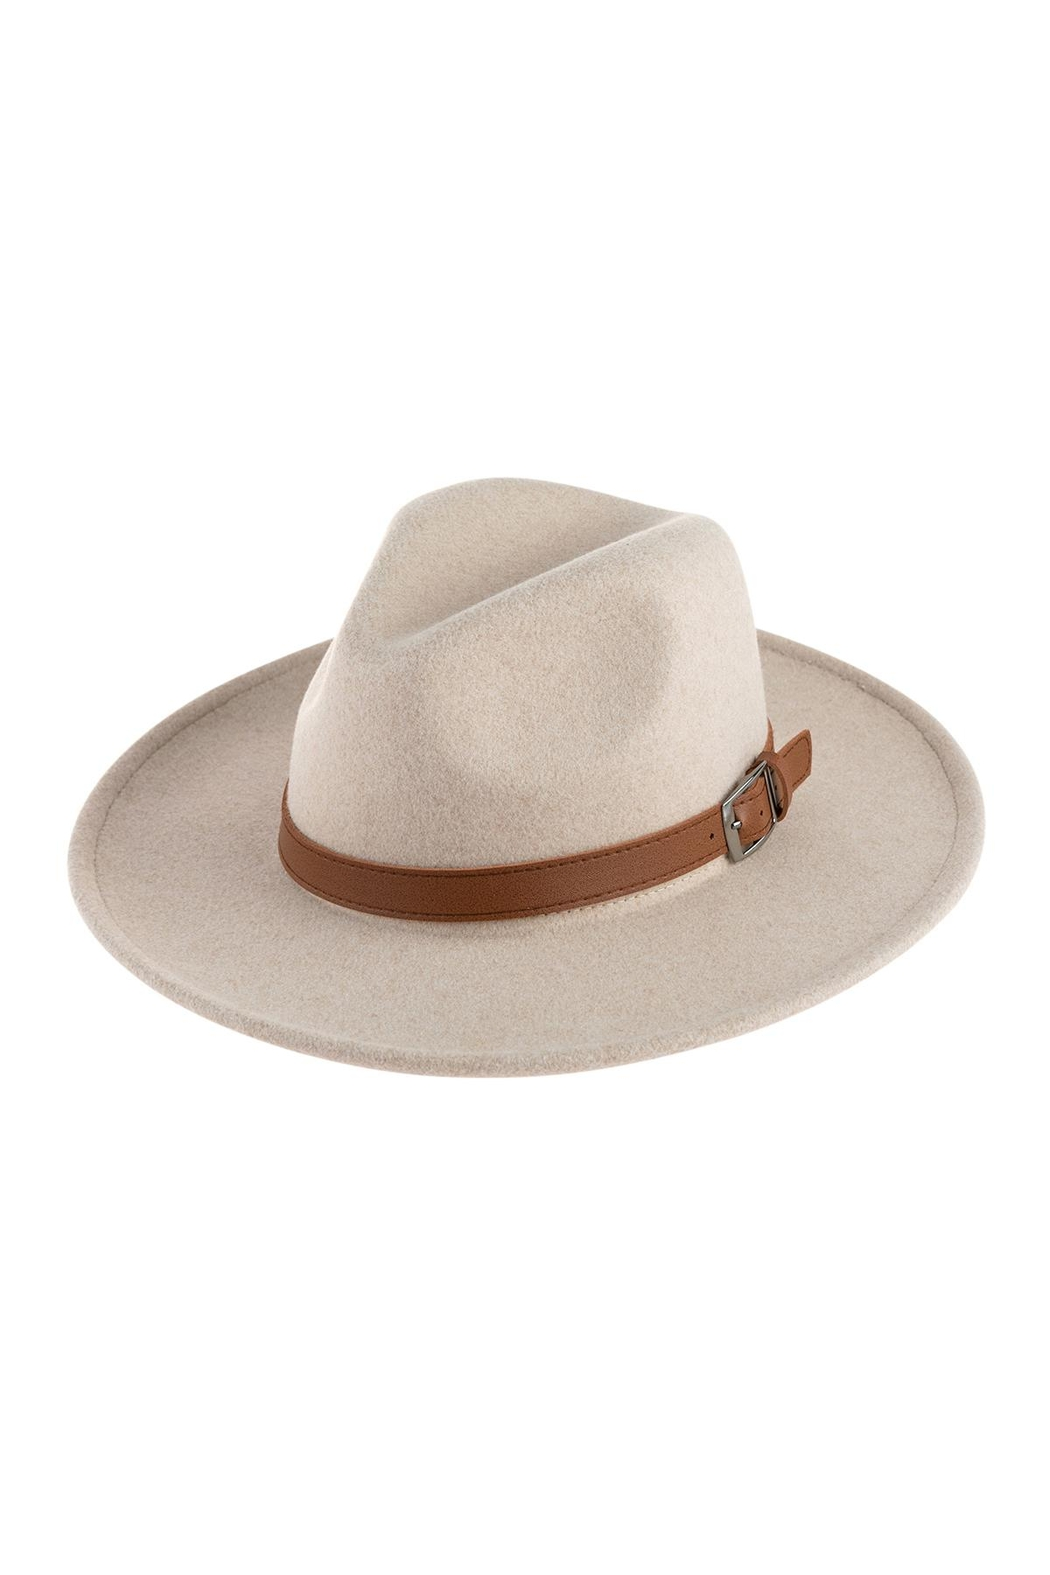 Riah Fashion Neutral Colors Fashion Hat With Leather Belt Accent - Main Image